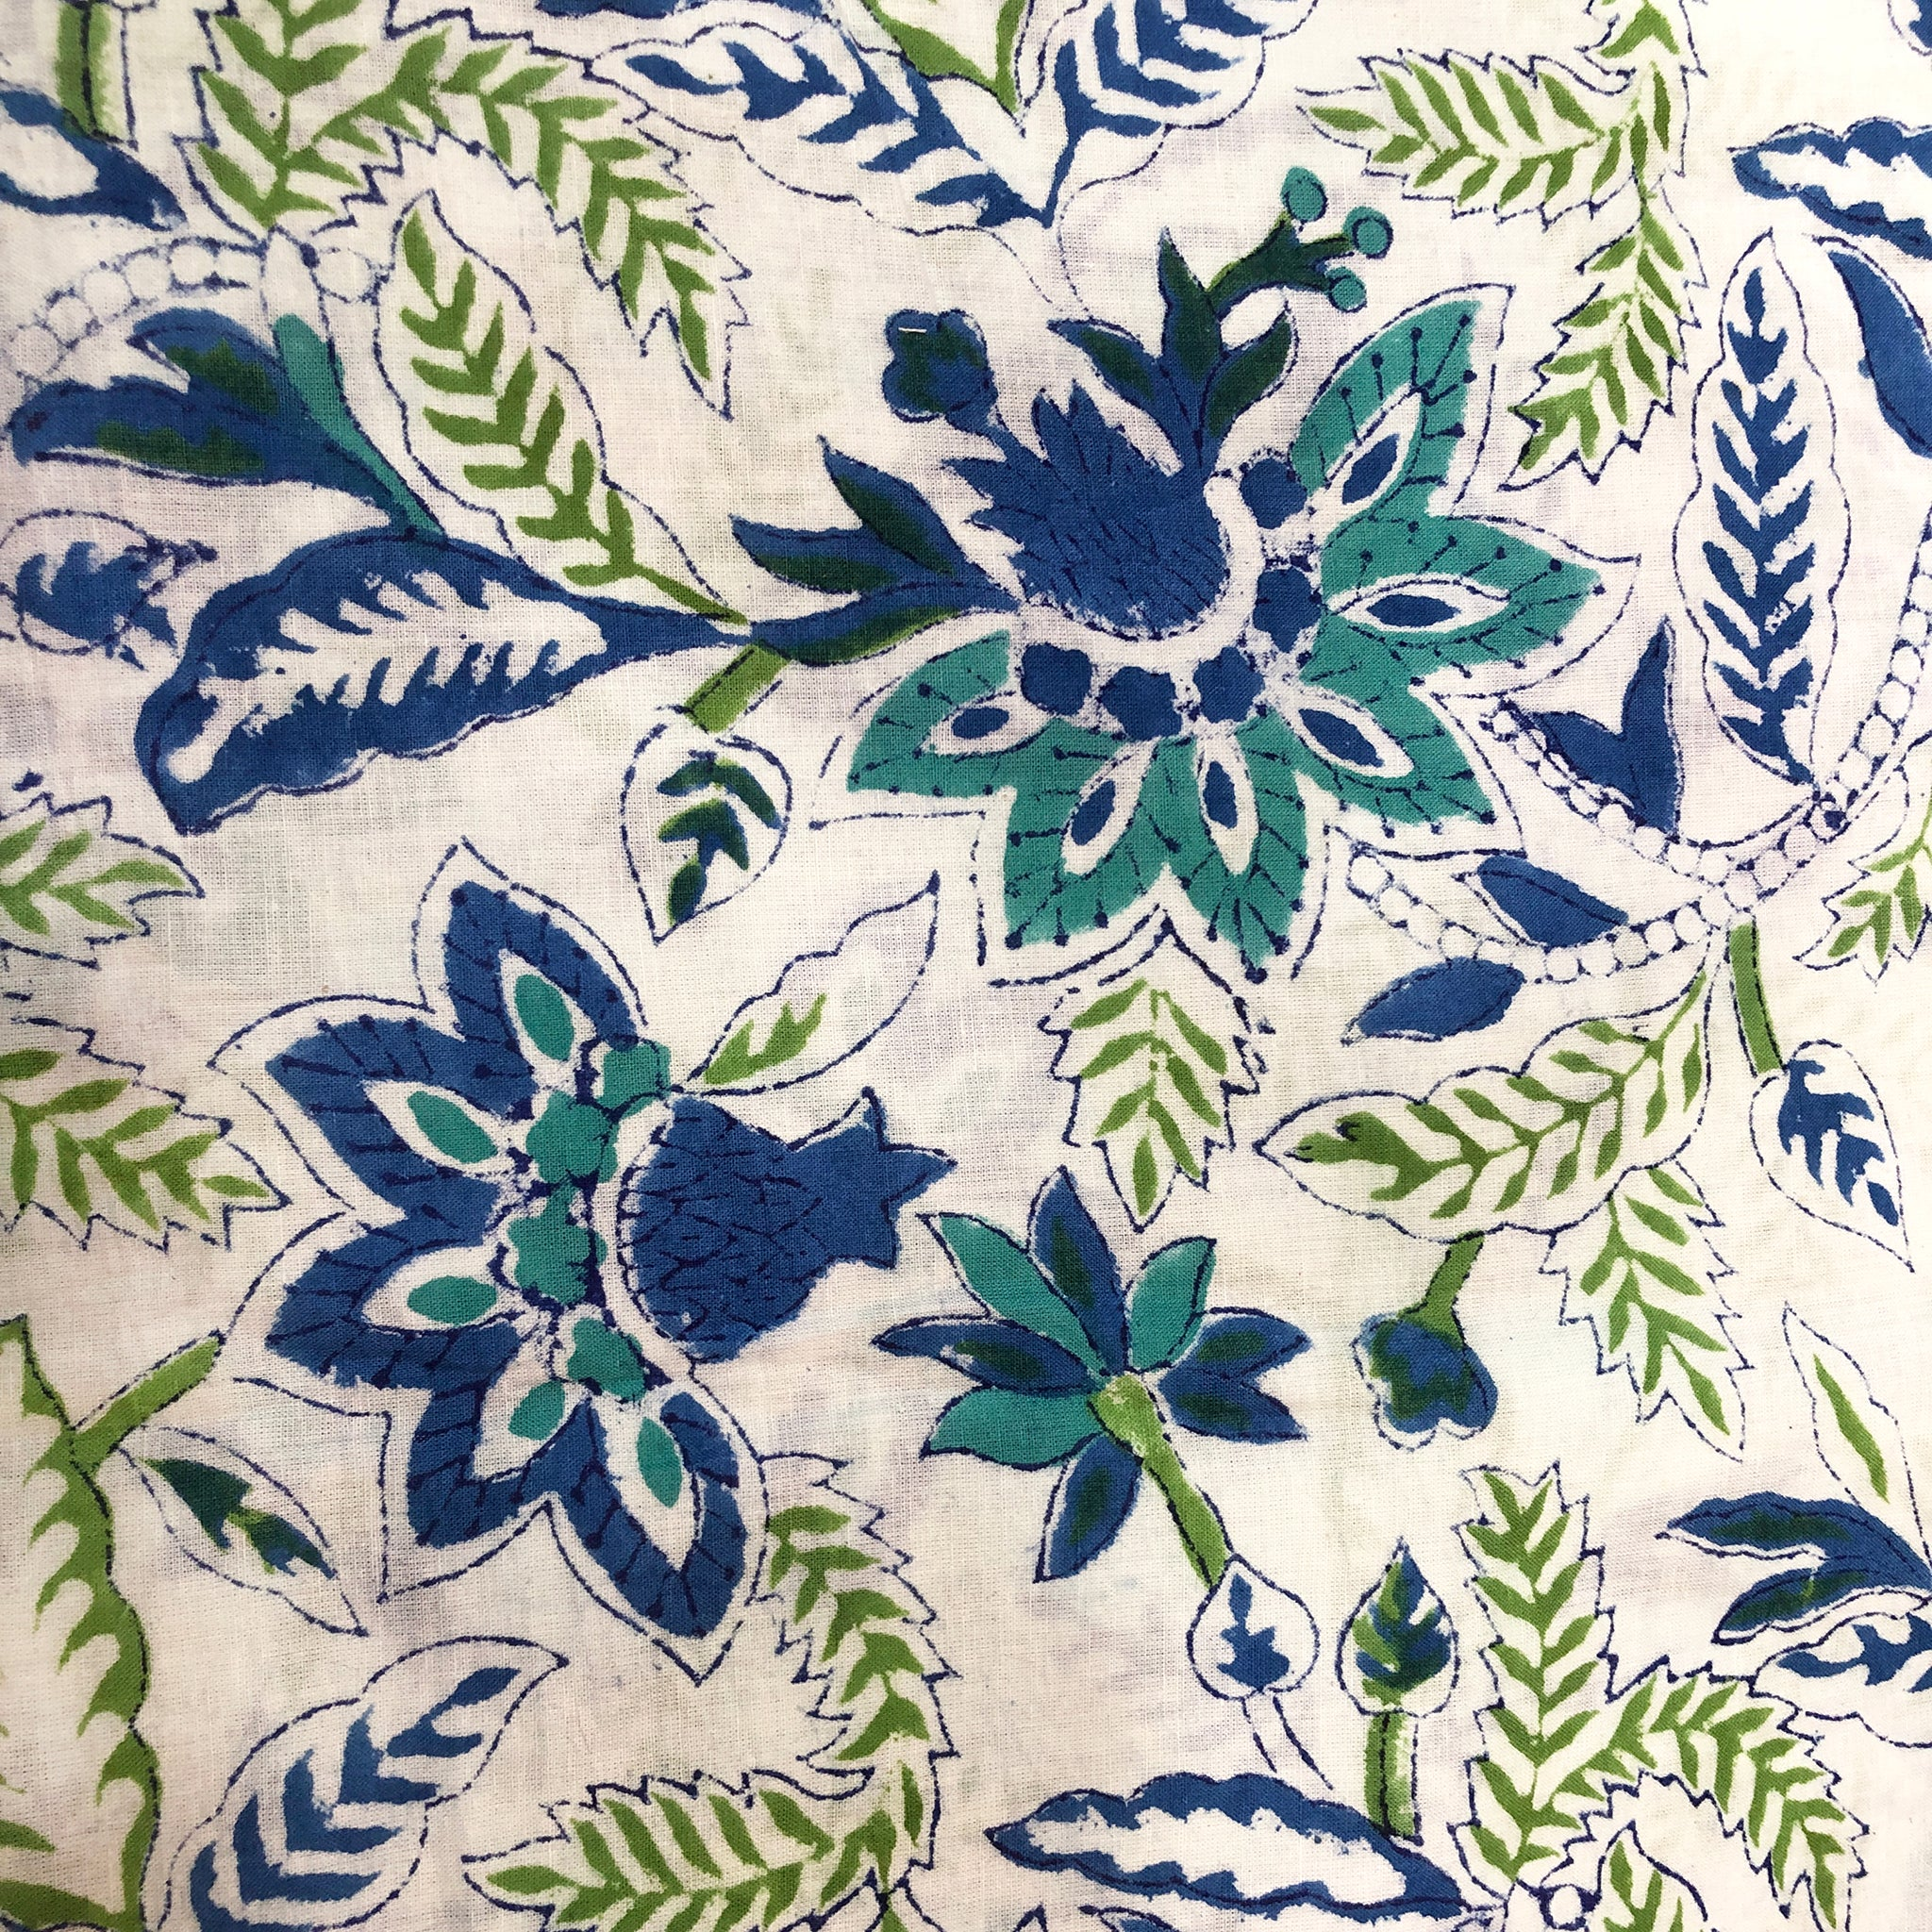 traditional-jaipuri-cotton-fabric-print-online-with-flowers